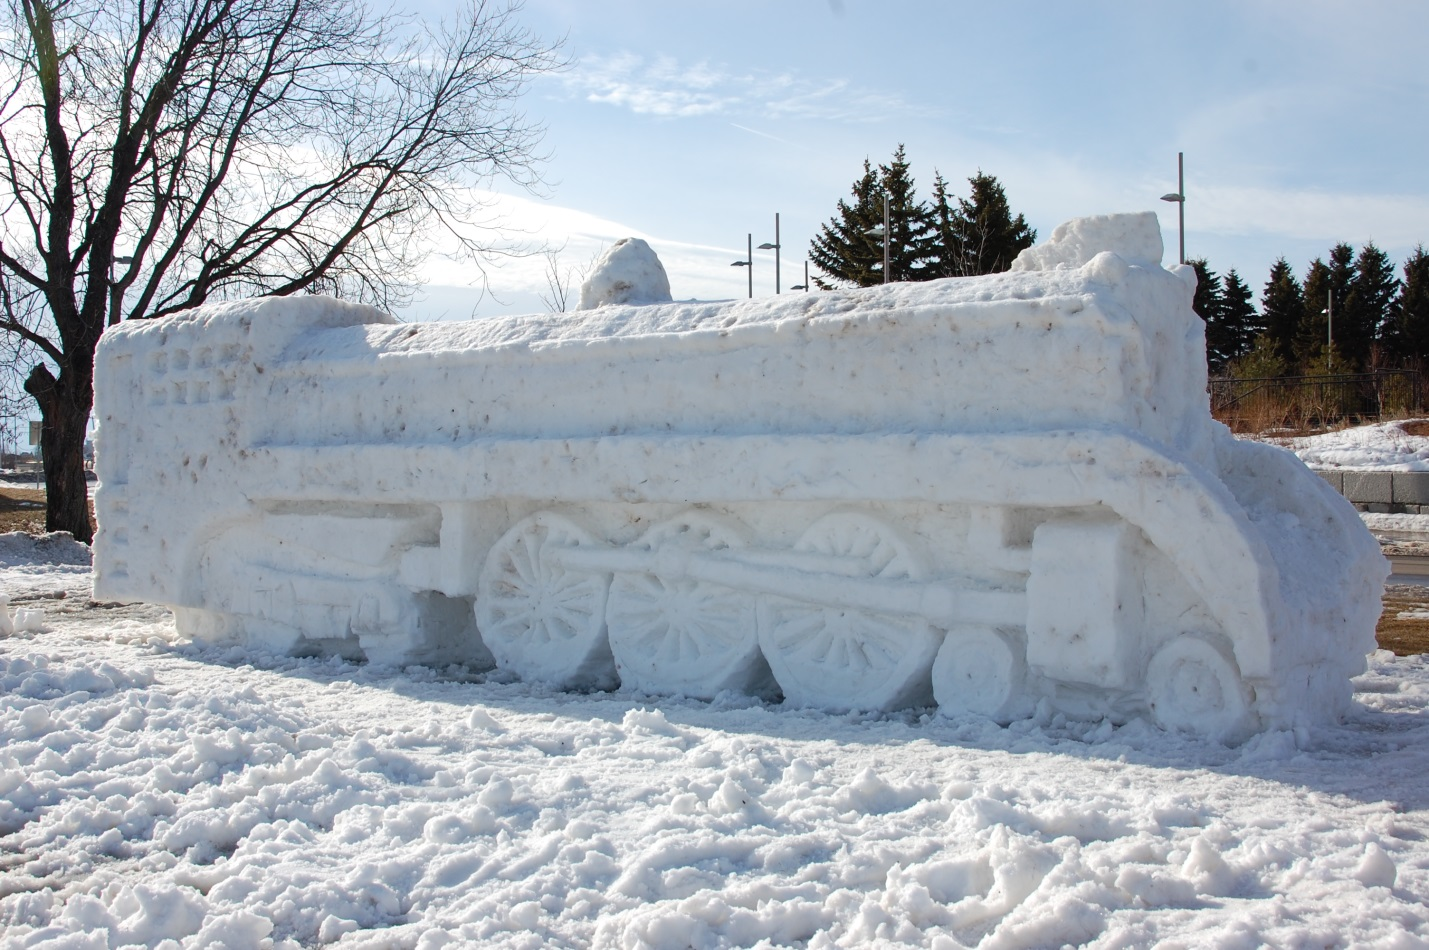 Snow sculpture of a locamotive